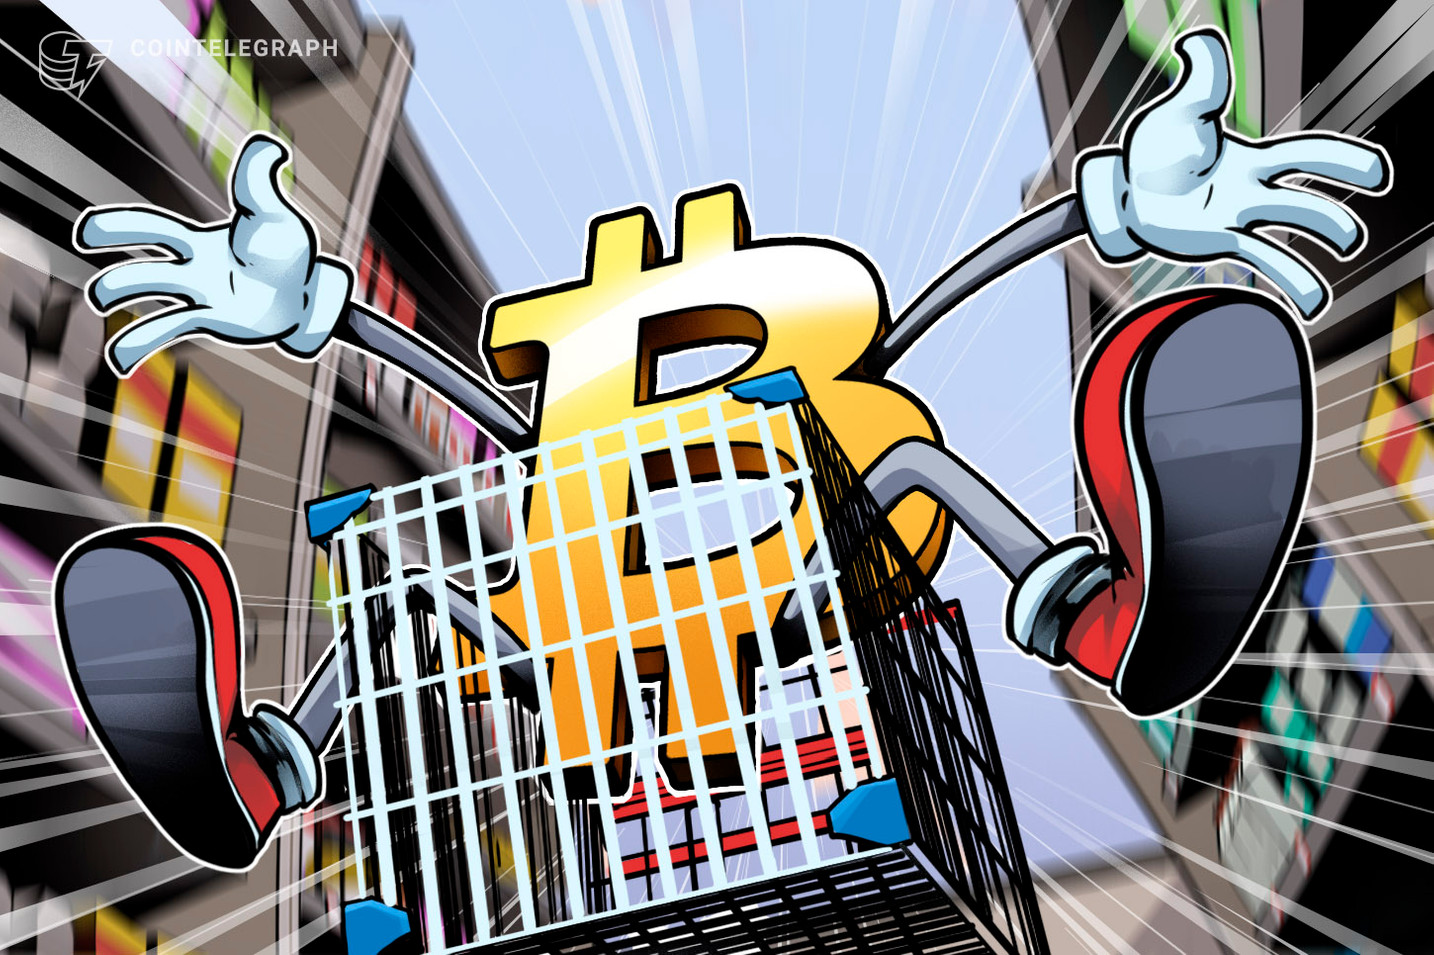 Miami mayor bought Bitcoin after Congress passed $1.9T stimulus bill